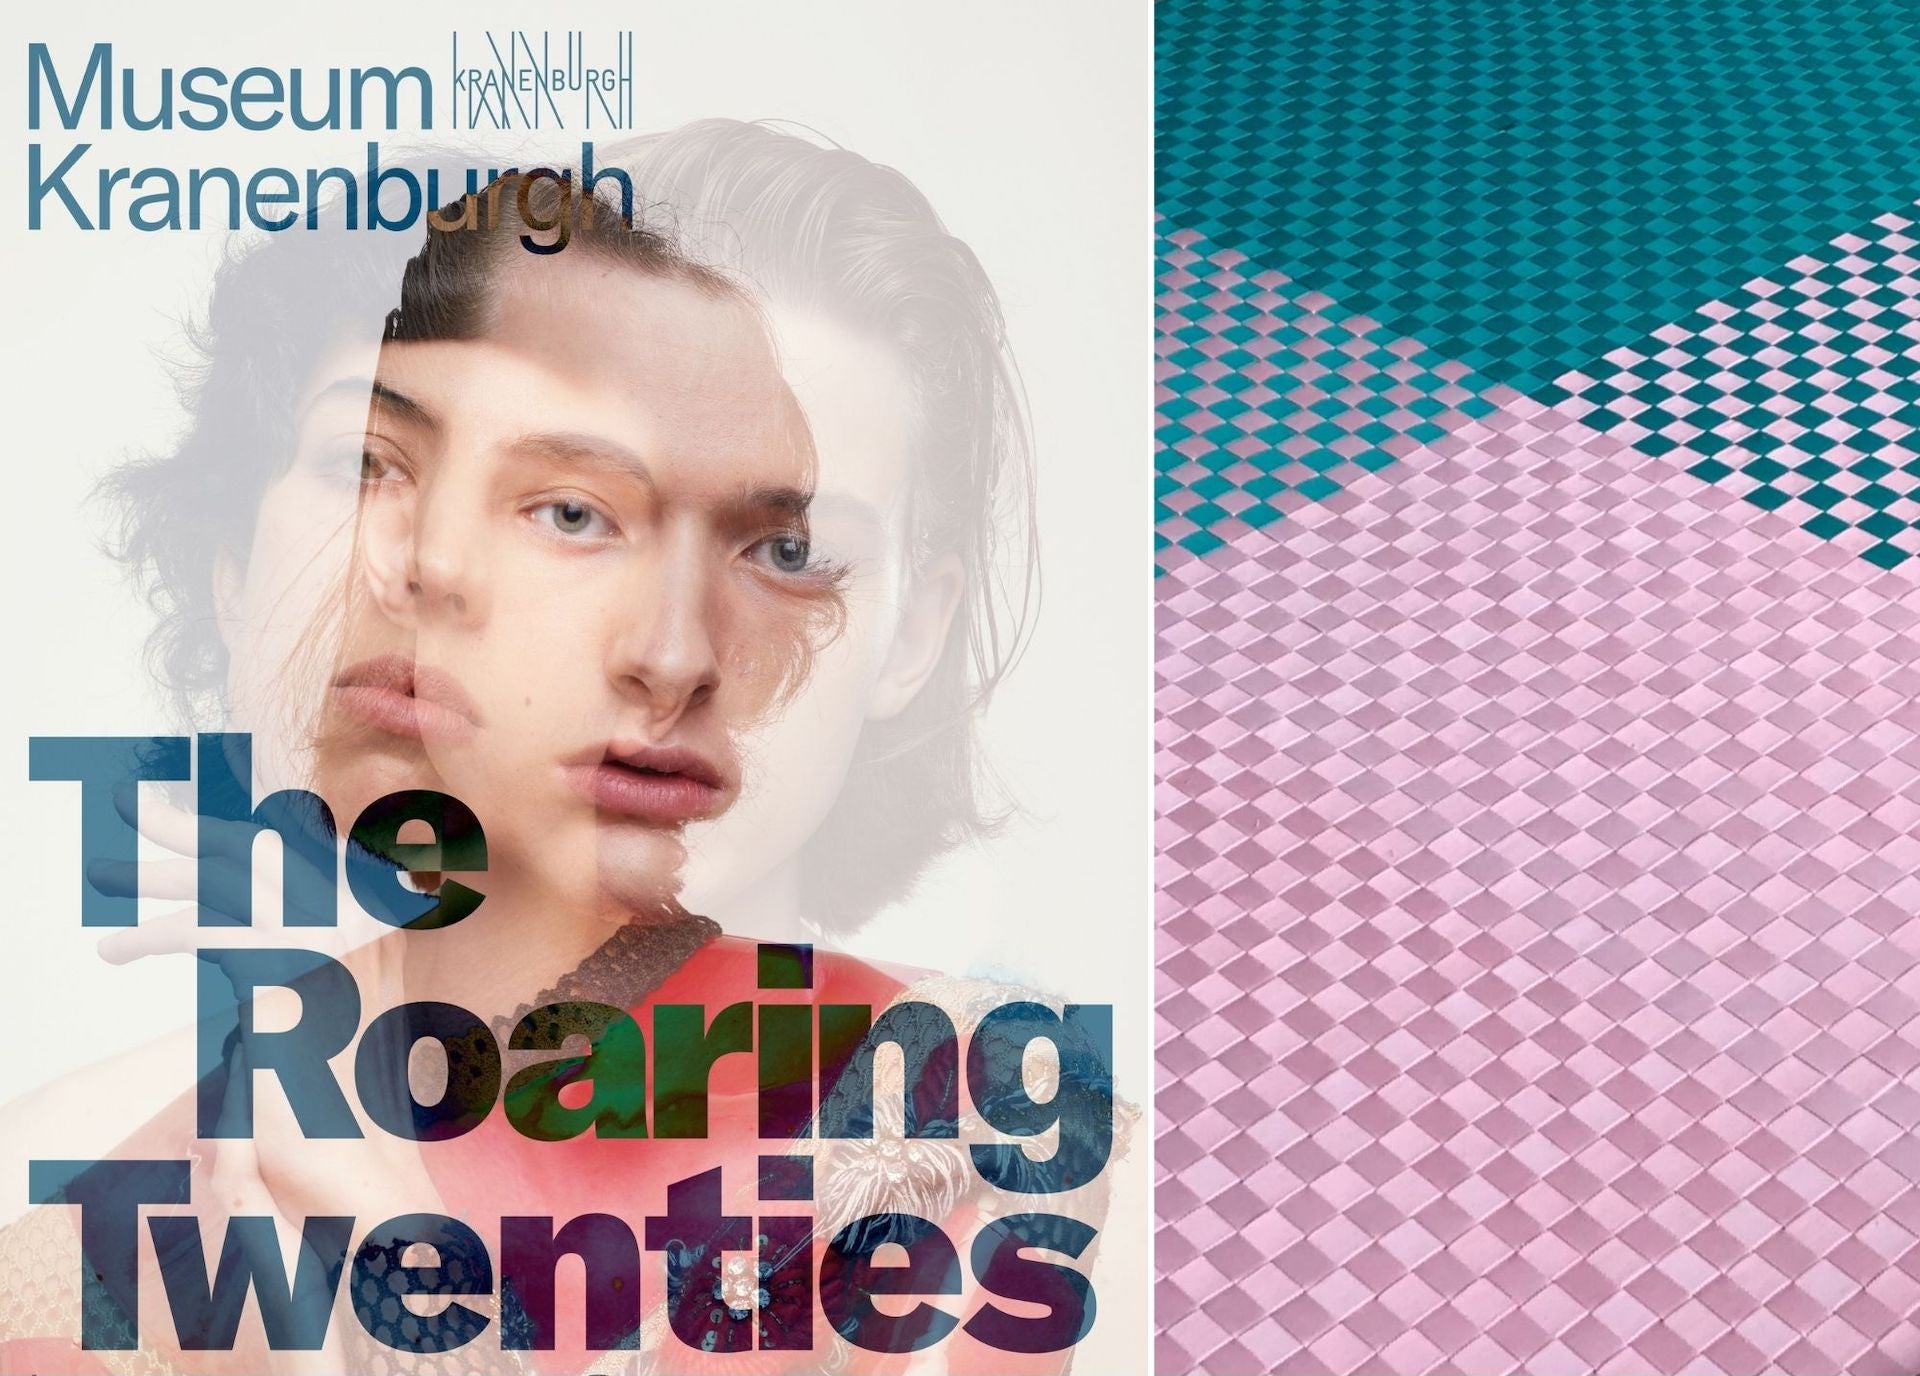 Promotional Posters for The Roaring Twenties beside a detail on a new rug by Studio Wieki Somers. Photos courtesy of Studio Wieki Somers